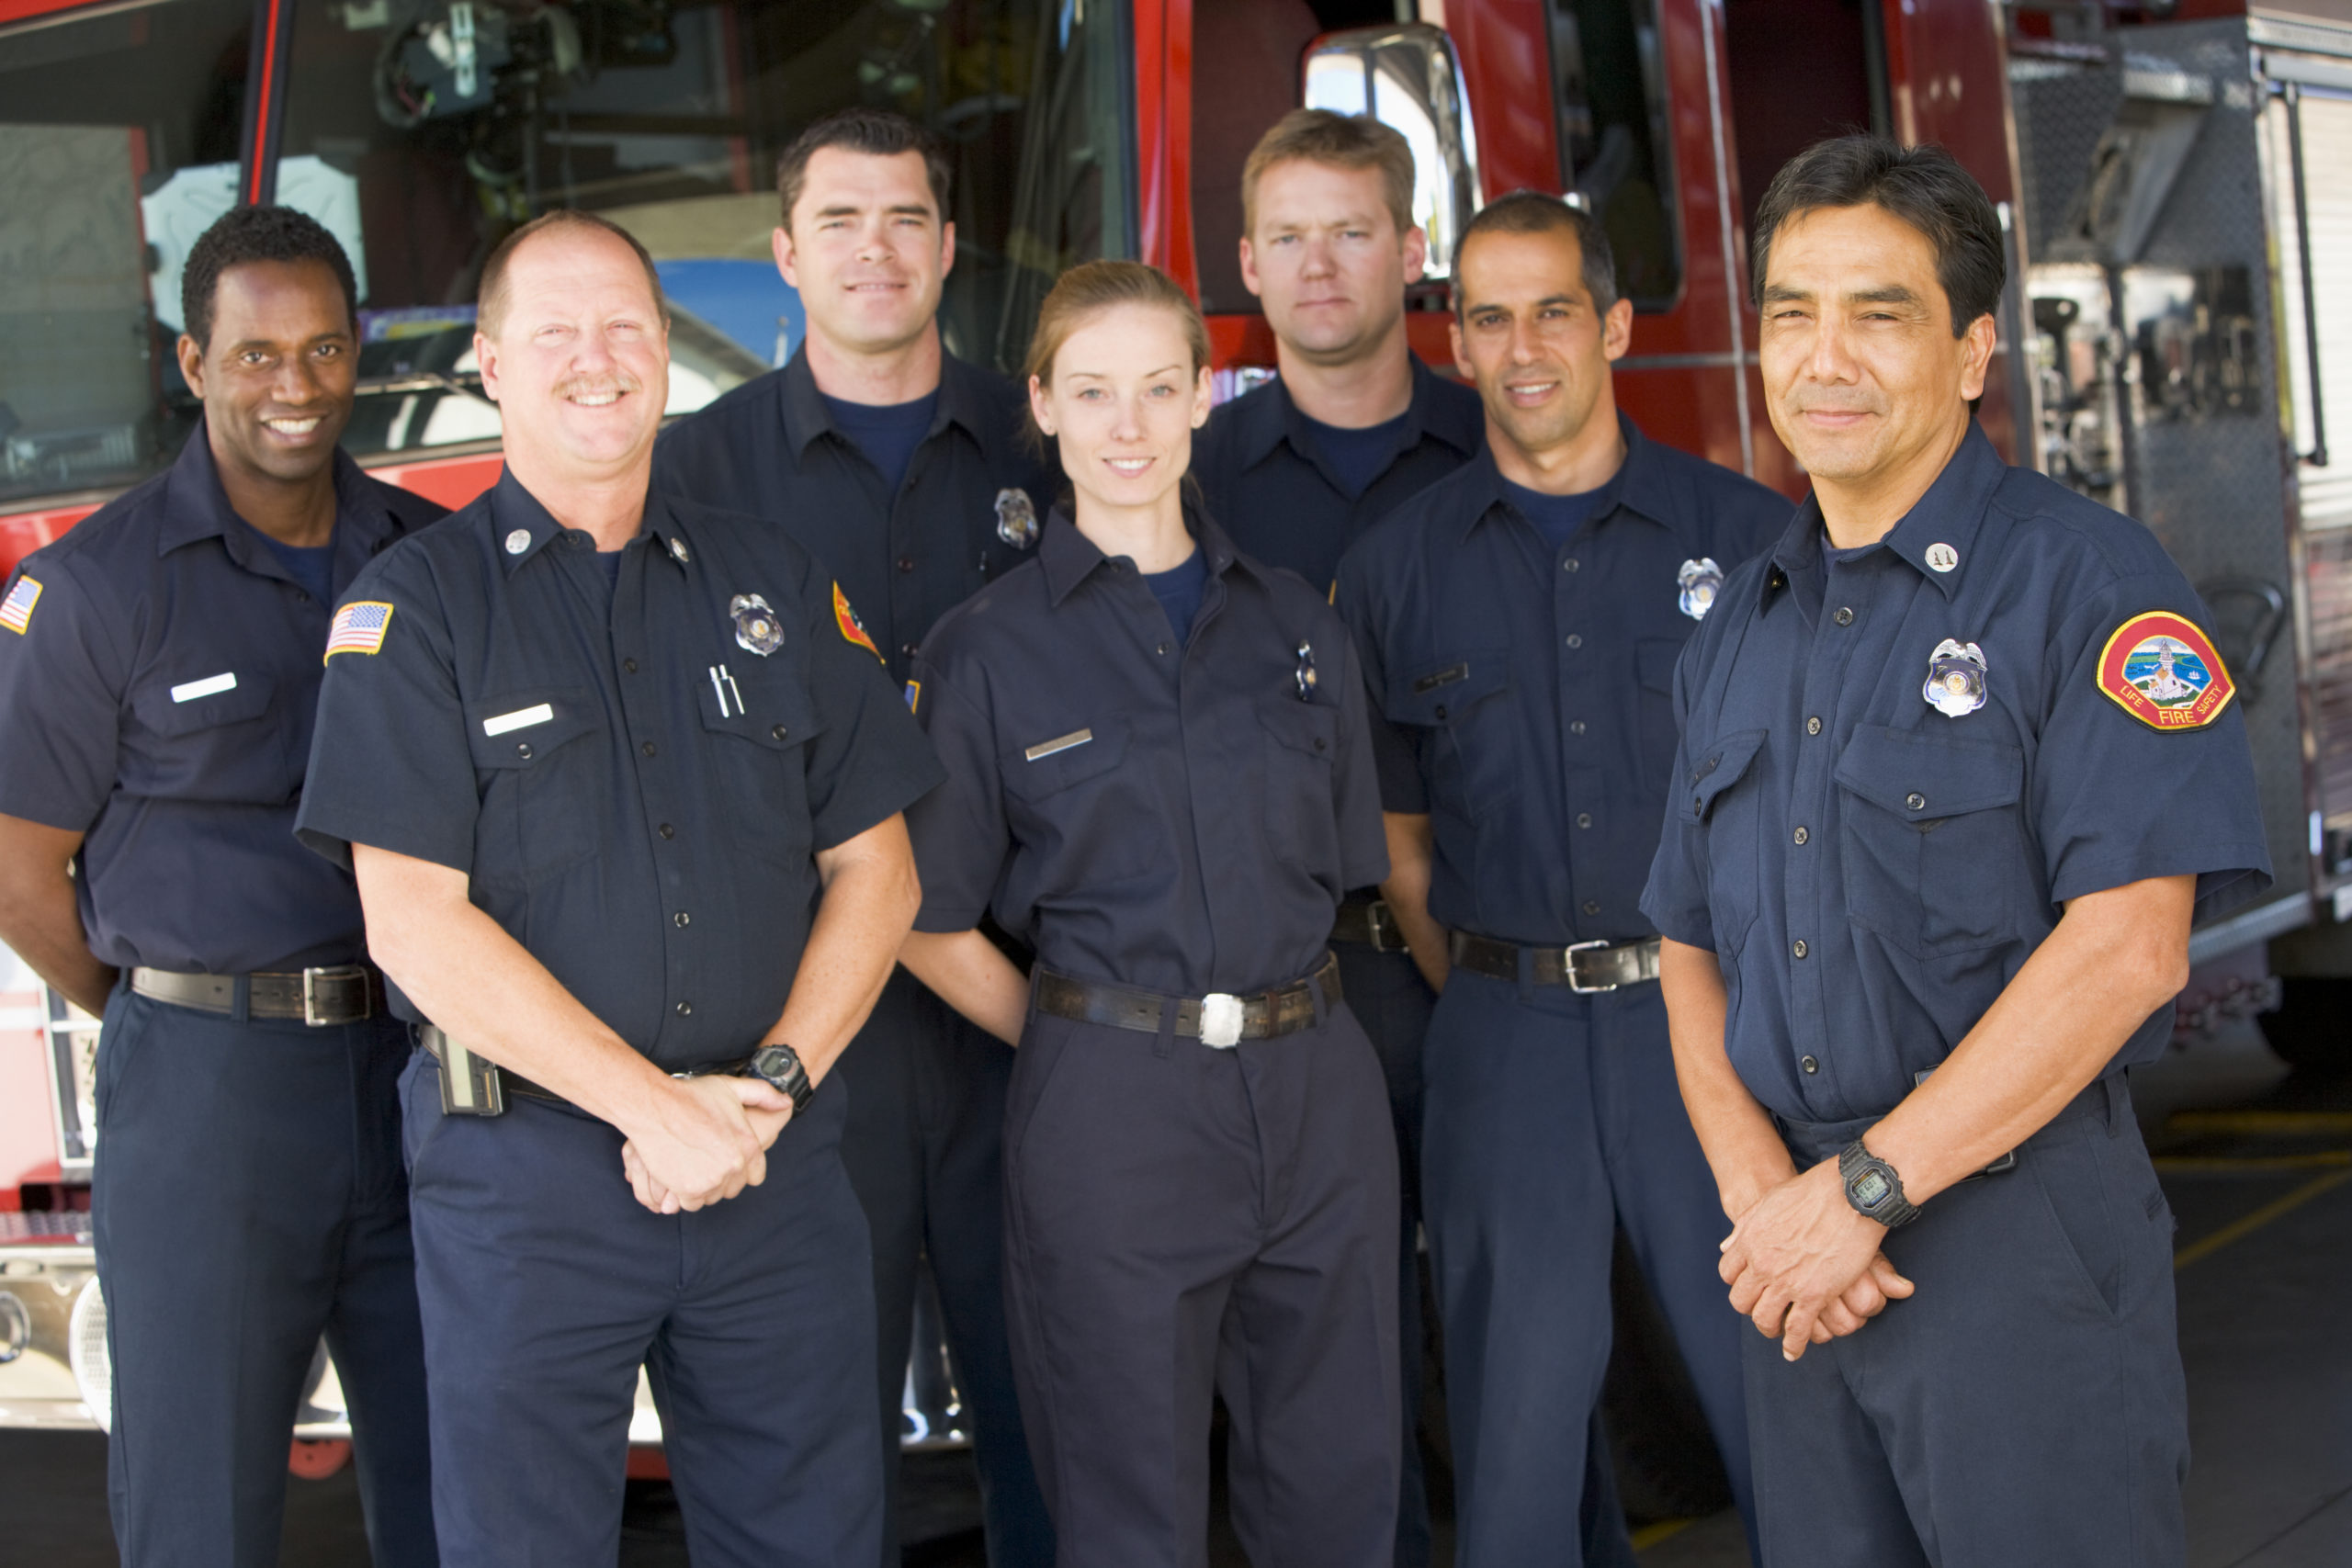 Portrait,Of,Firefighters,Standing,By,A,Fire,Engine